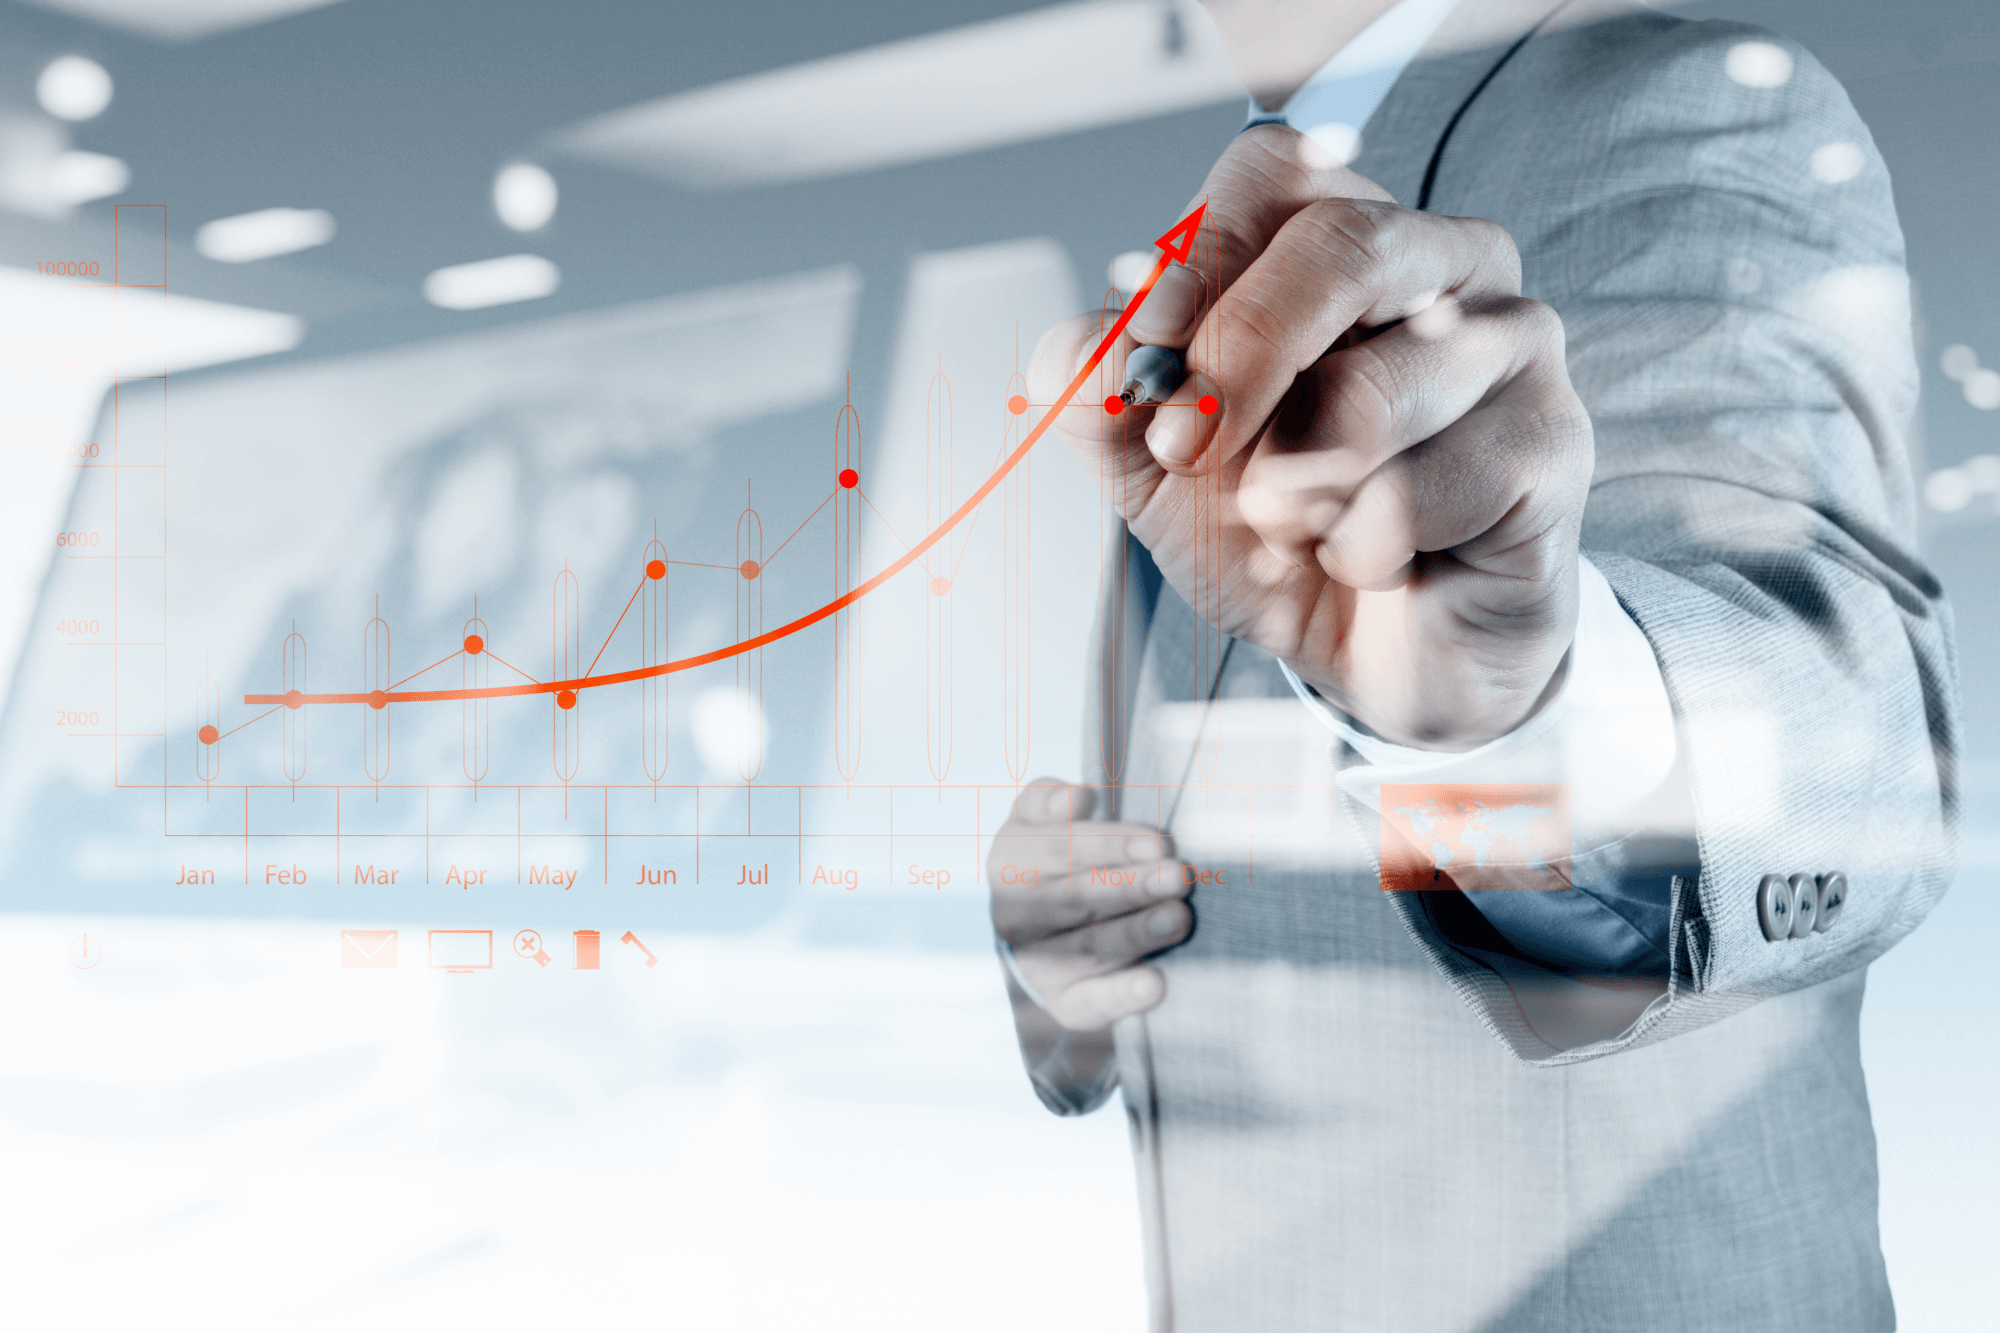 9 Business Intelligence & Artificial Intelligence trends in 2020